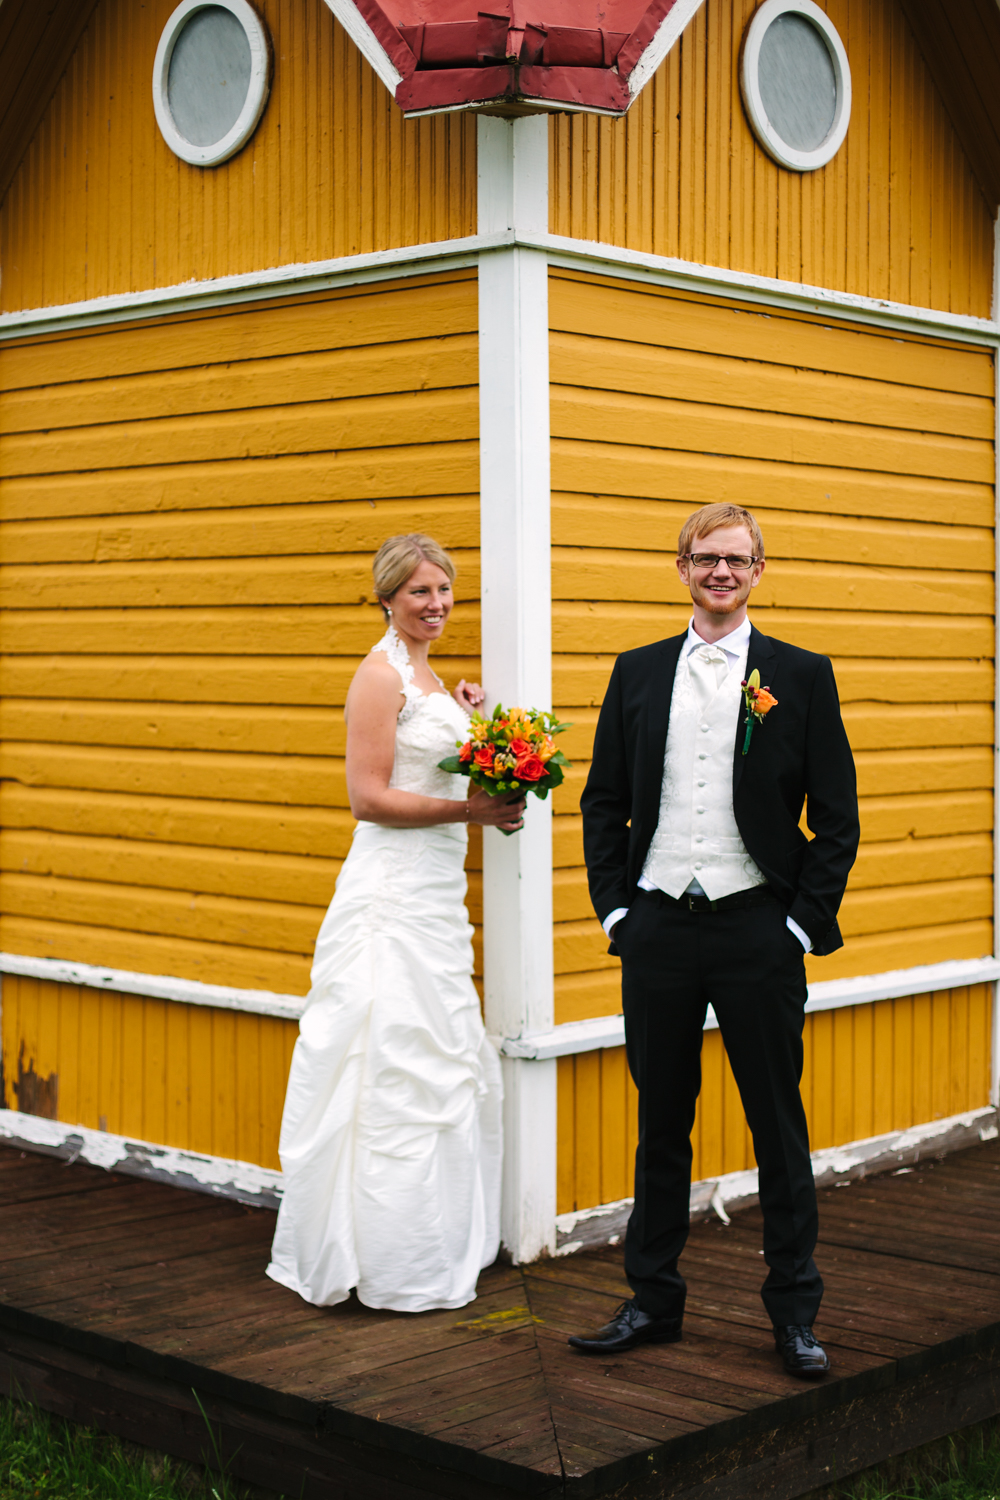 wedding_stina_johan-53.jpg